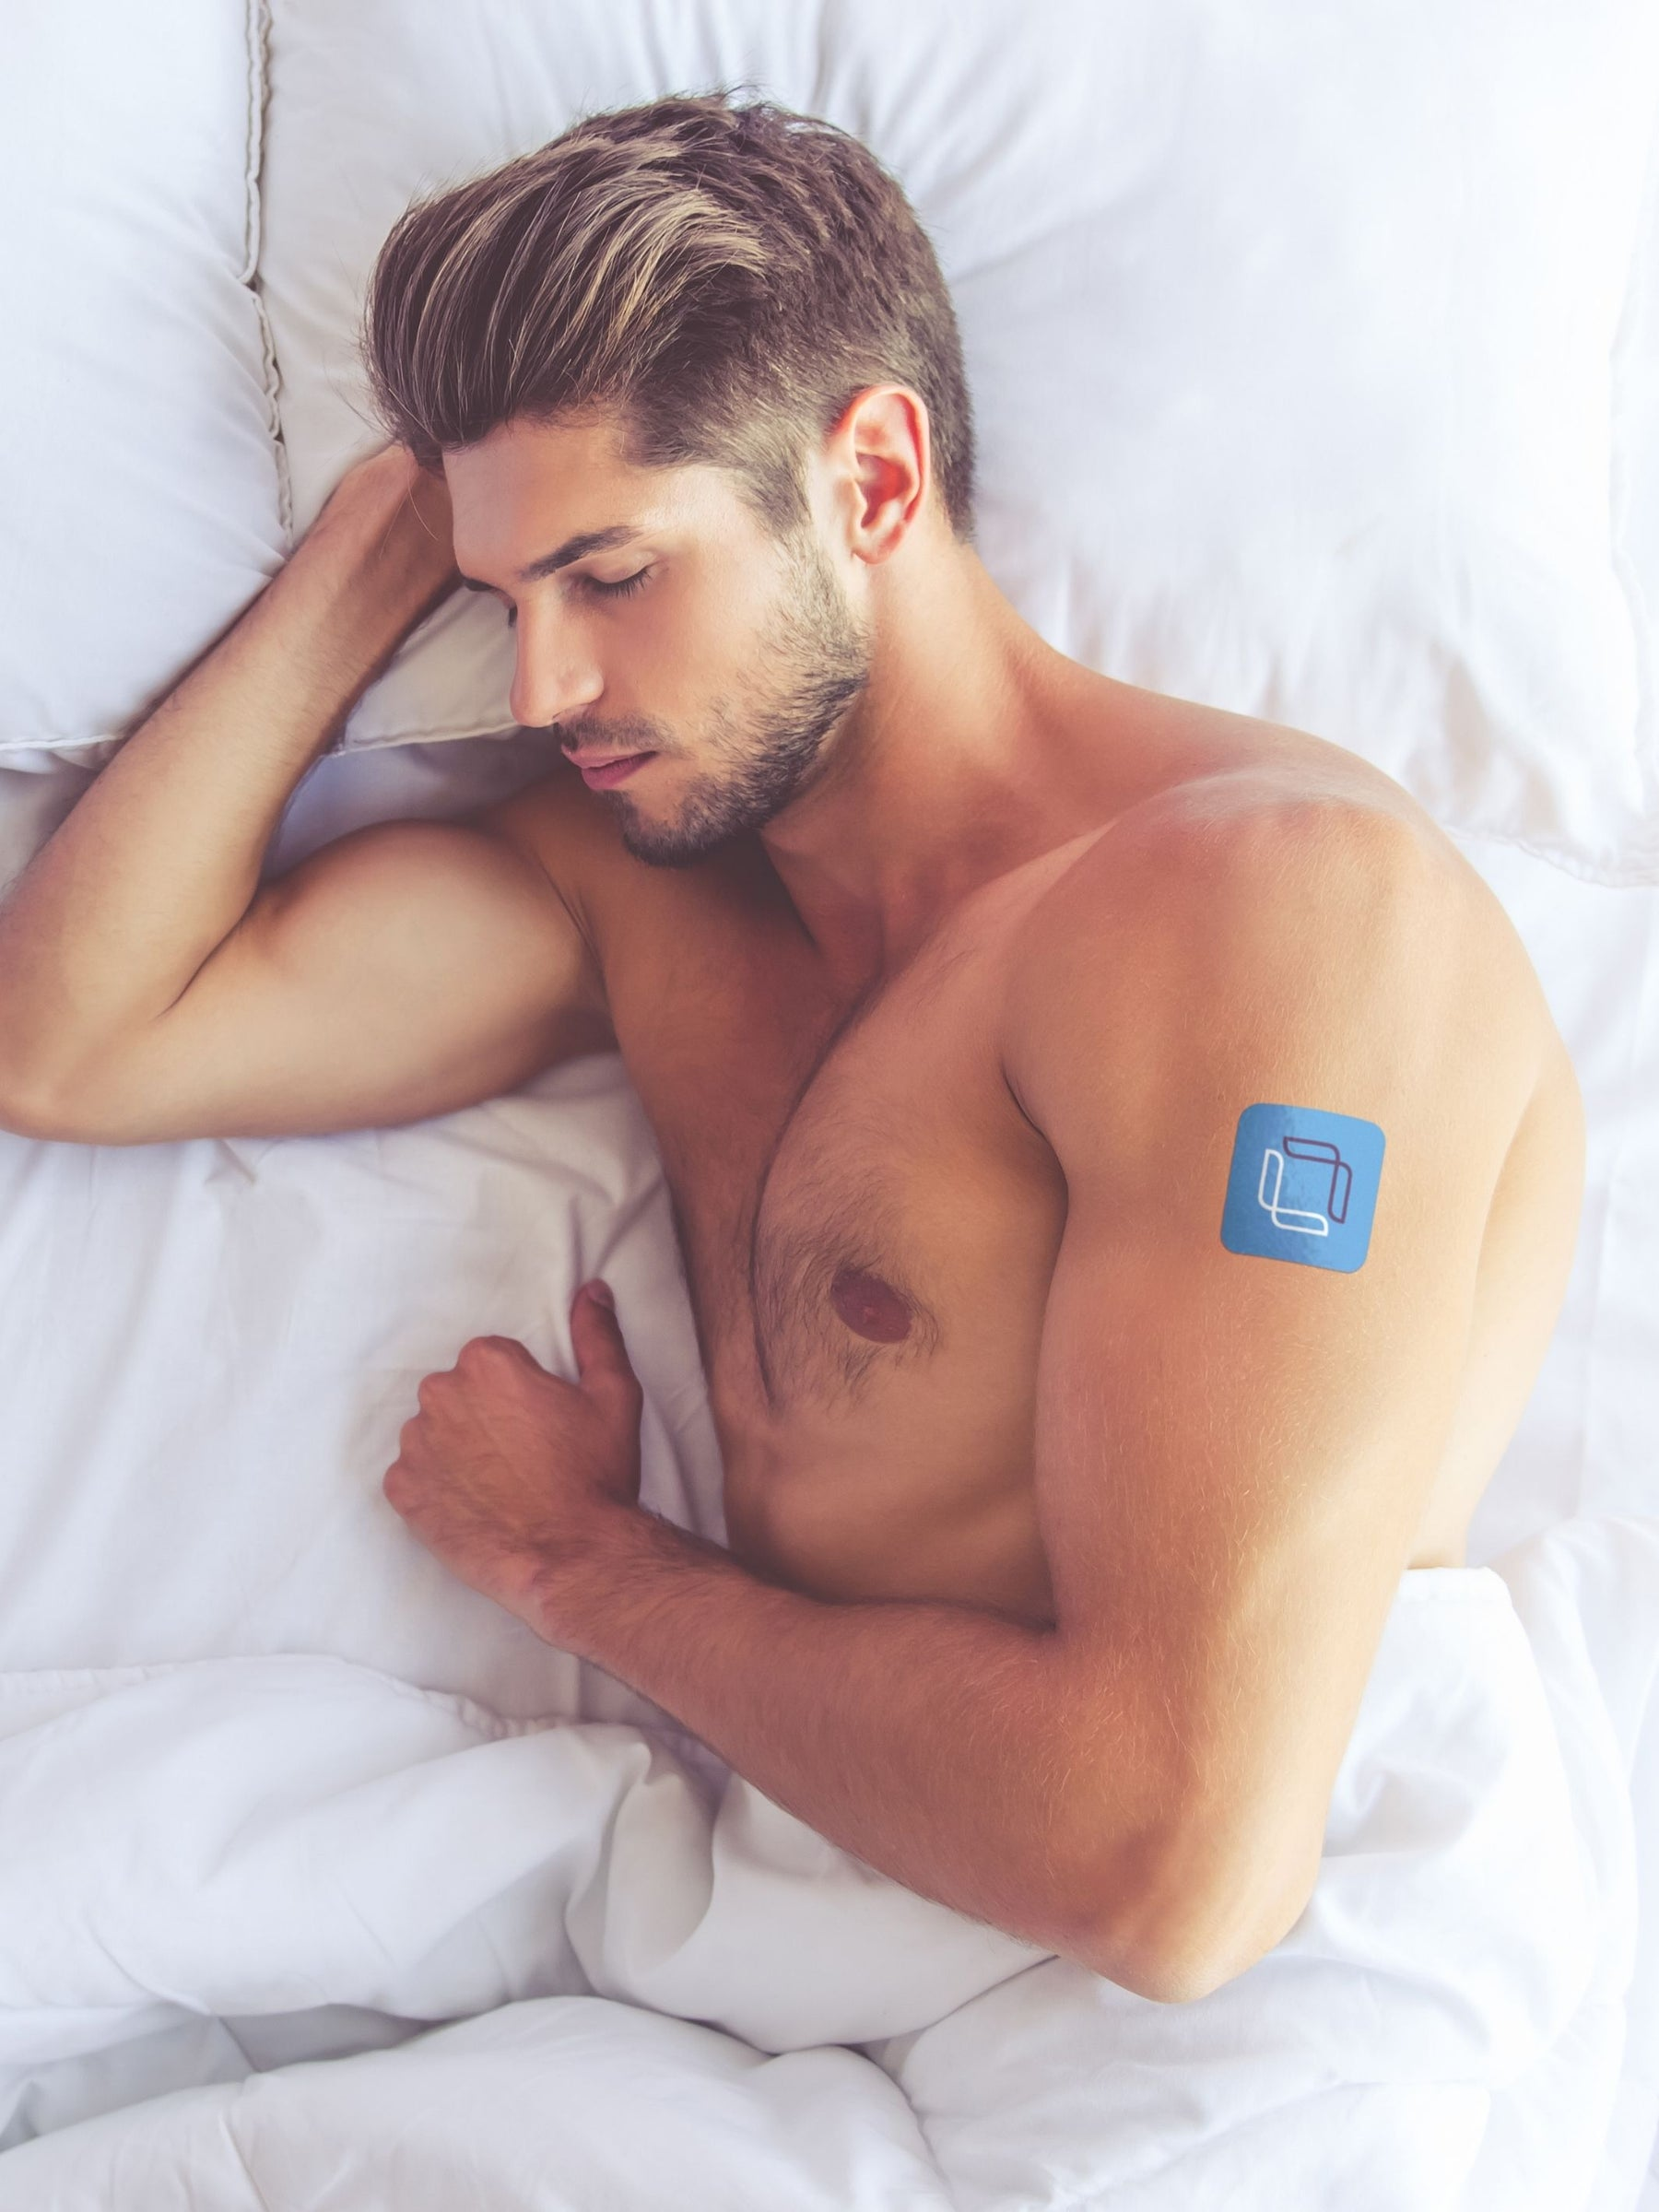 Guy sleeping in bed wearing a Microlayer sleeping patch